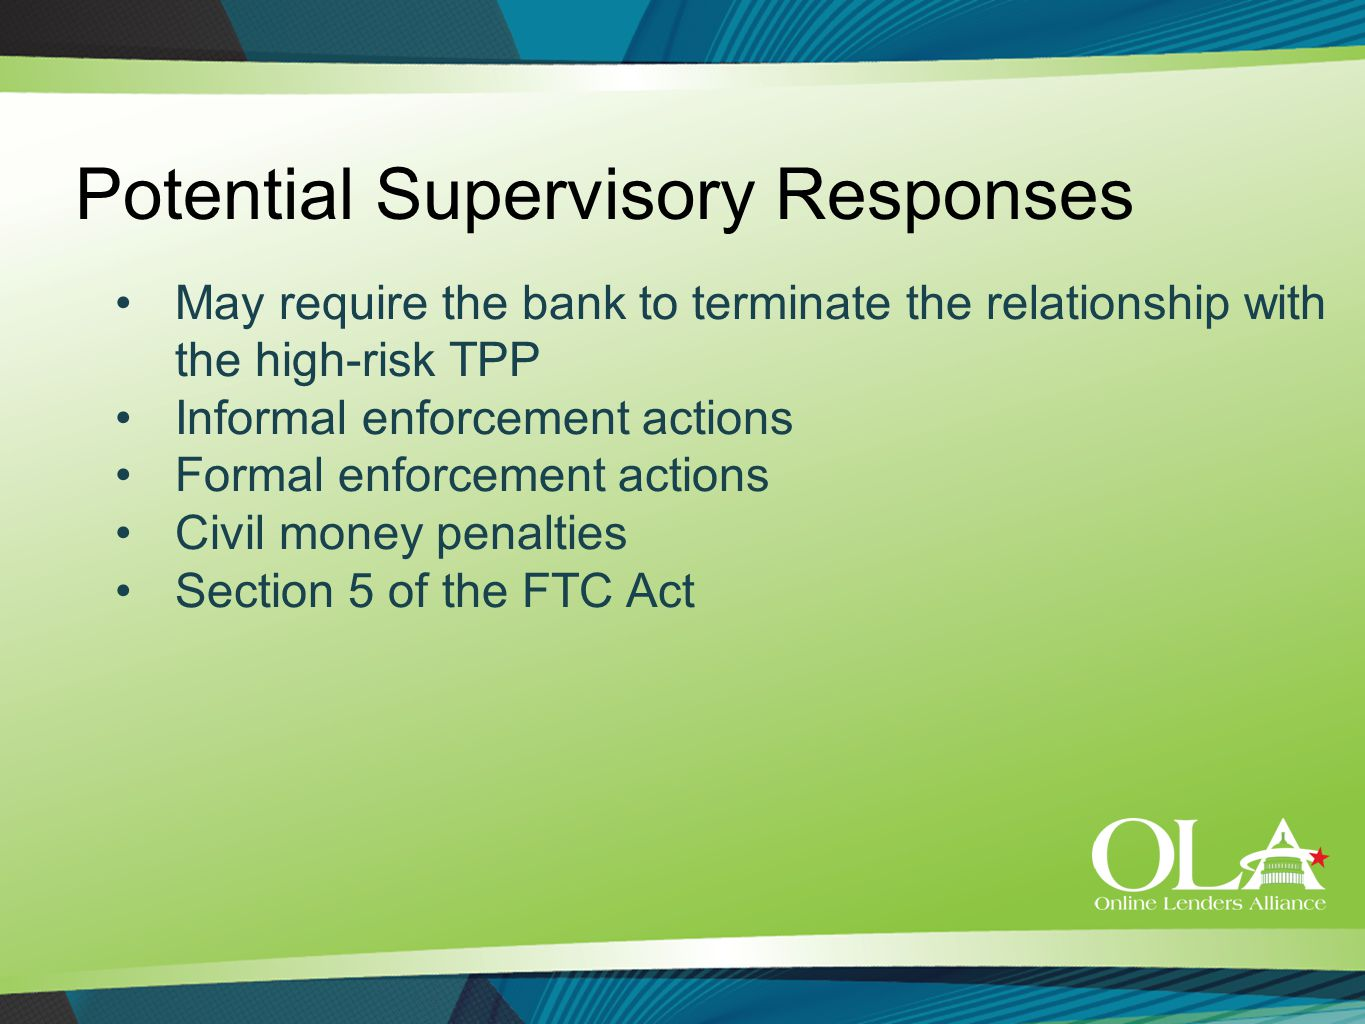 Potential Supervisory Responses May require the bank to terminate the relationship with the high-risk TPP Informal enforcement actions Formal enforcement actions Civil money penalties Section 5 of the FTC Act